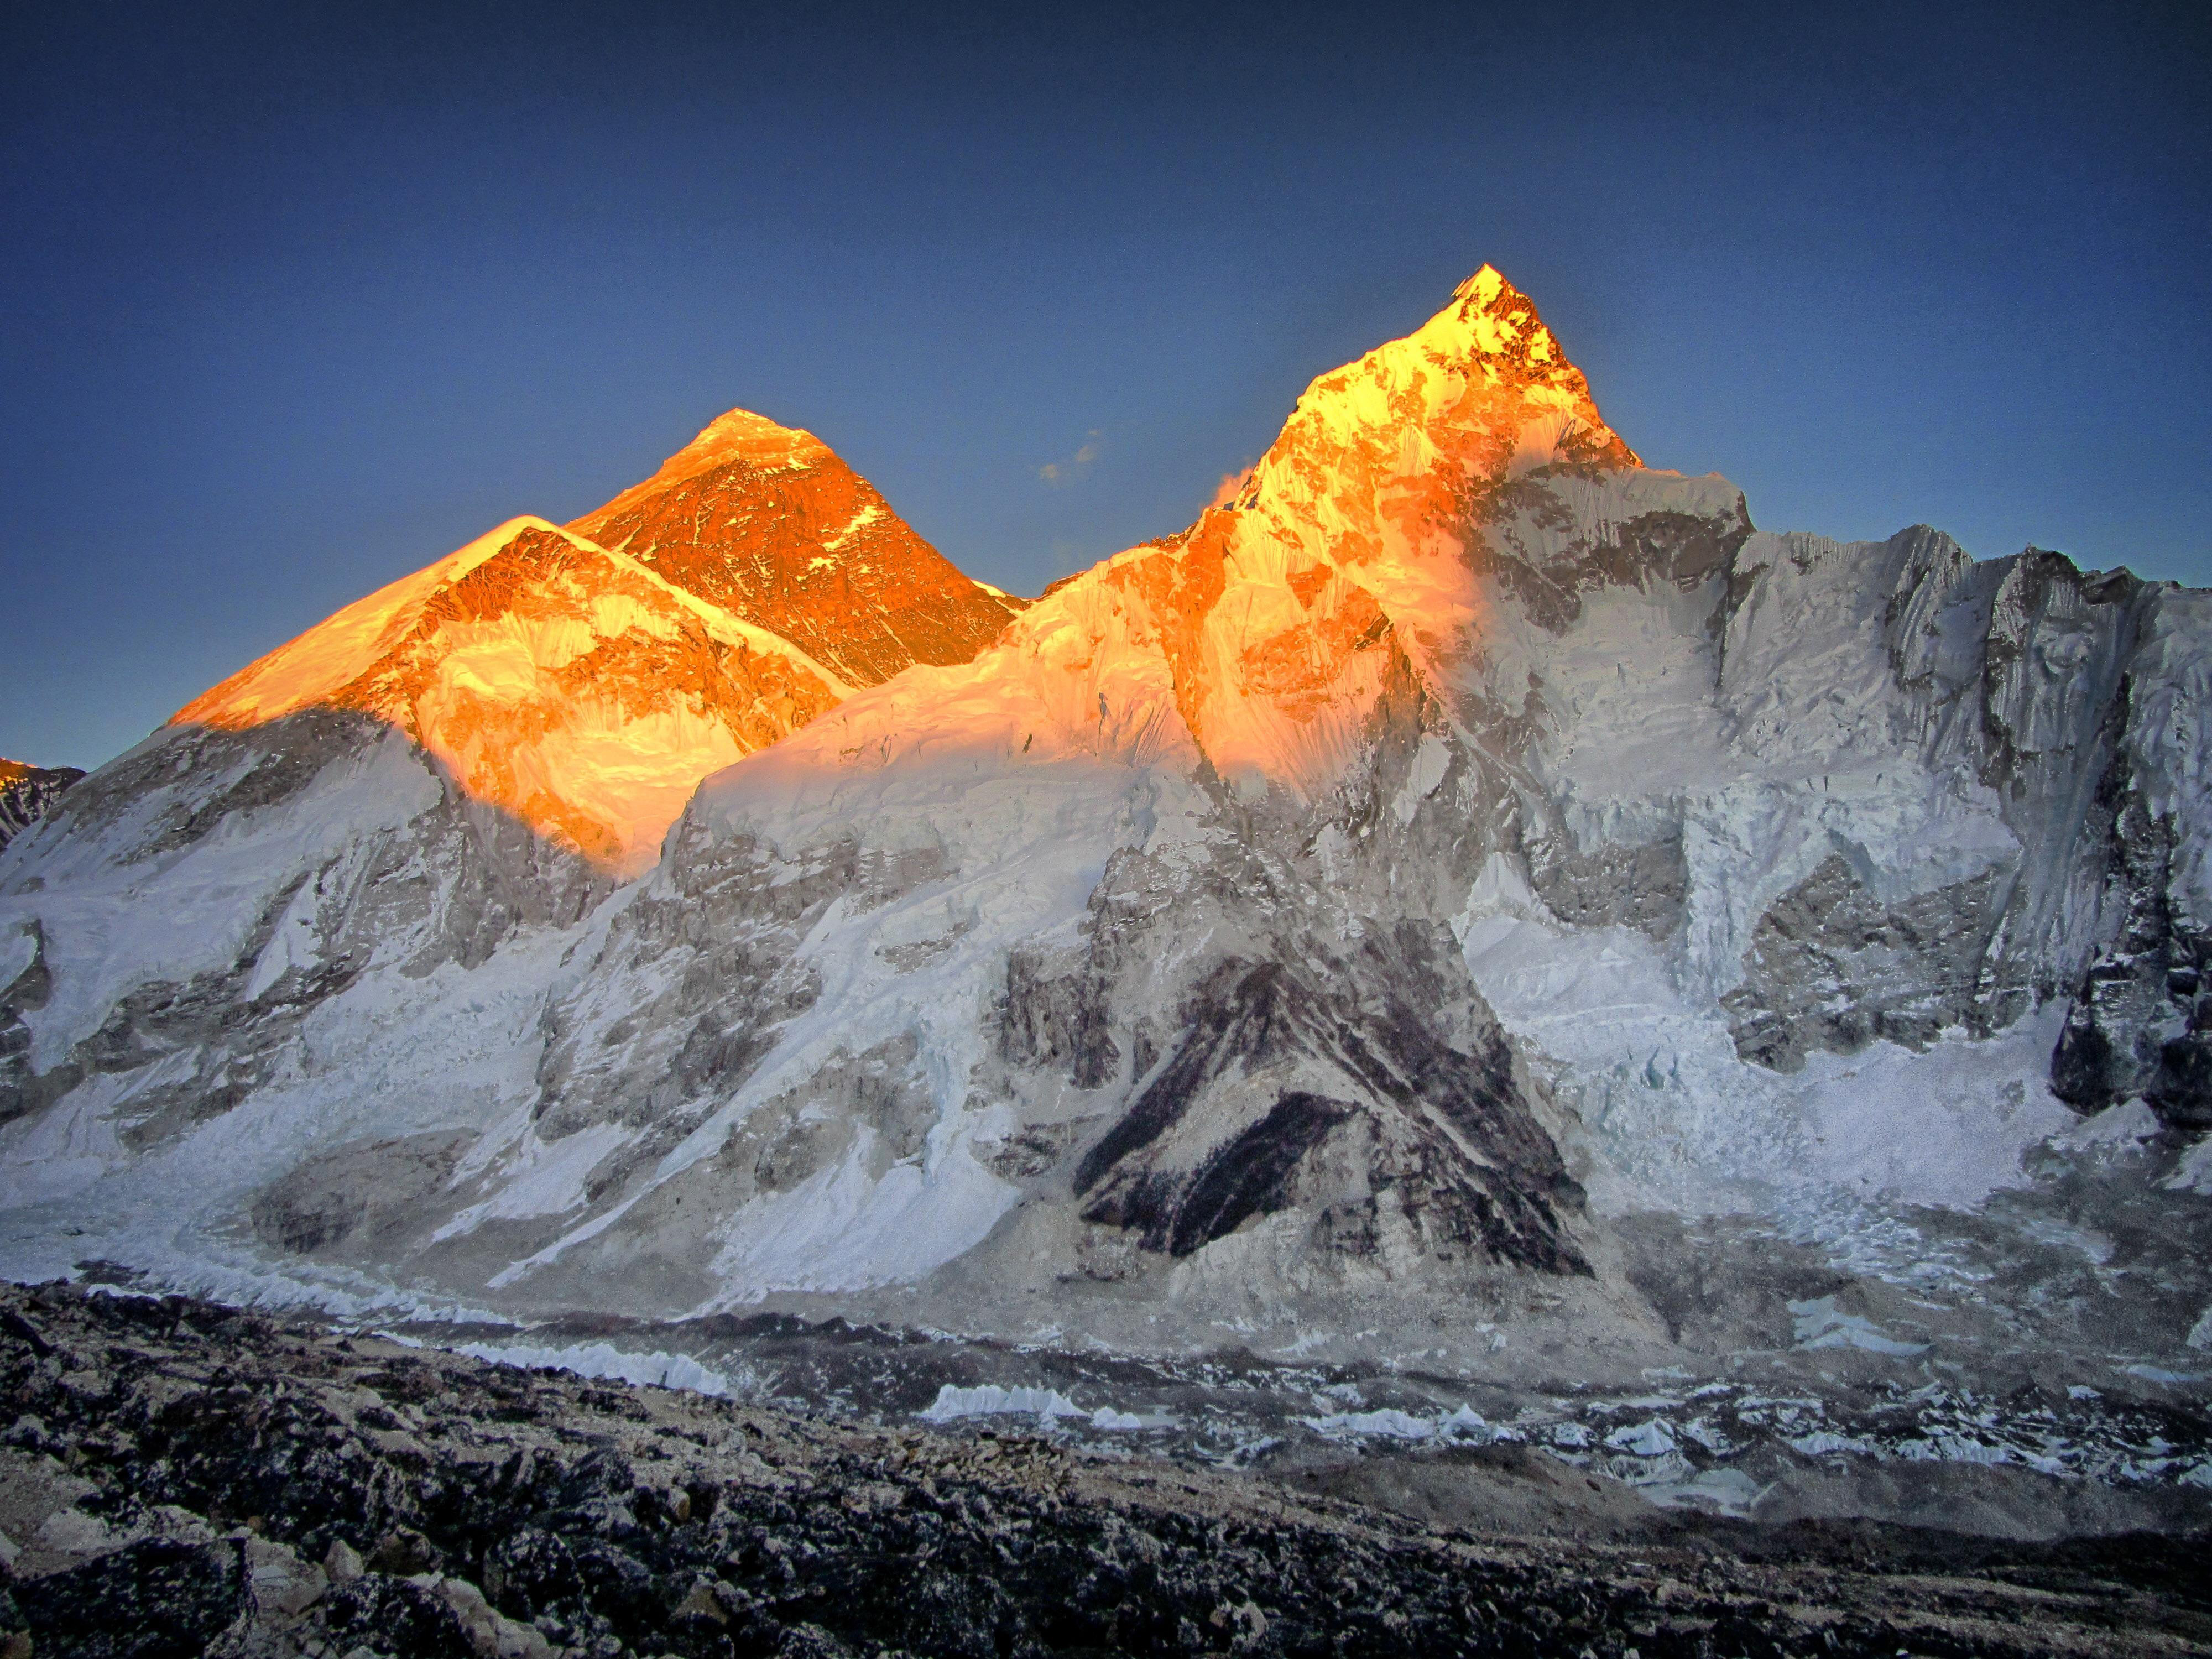 Mount Everest Sunset 4k, HD Artist, 4k Wallpapers, Images